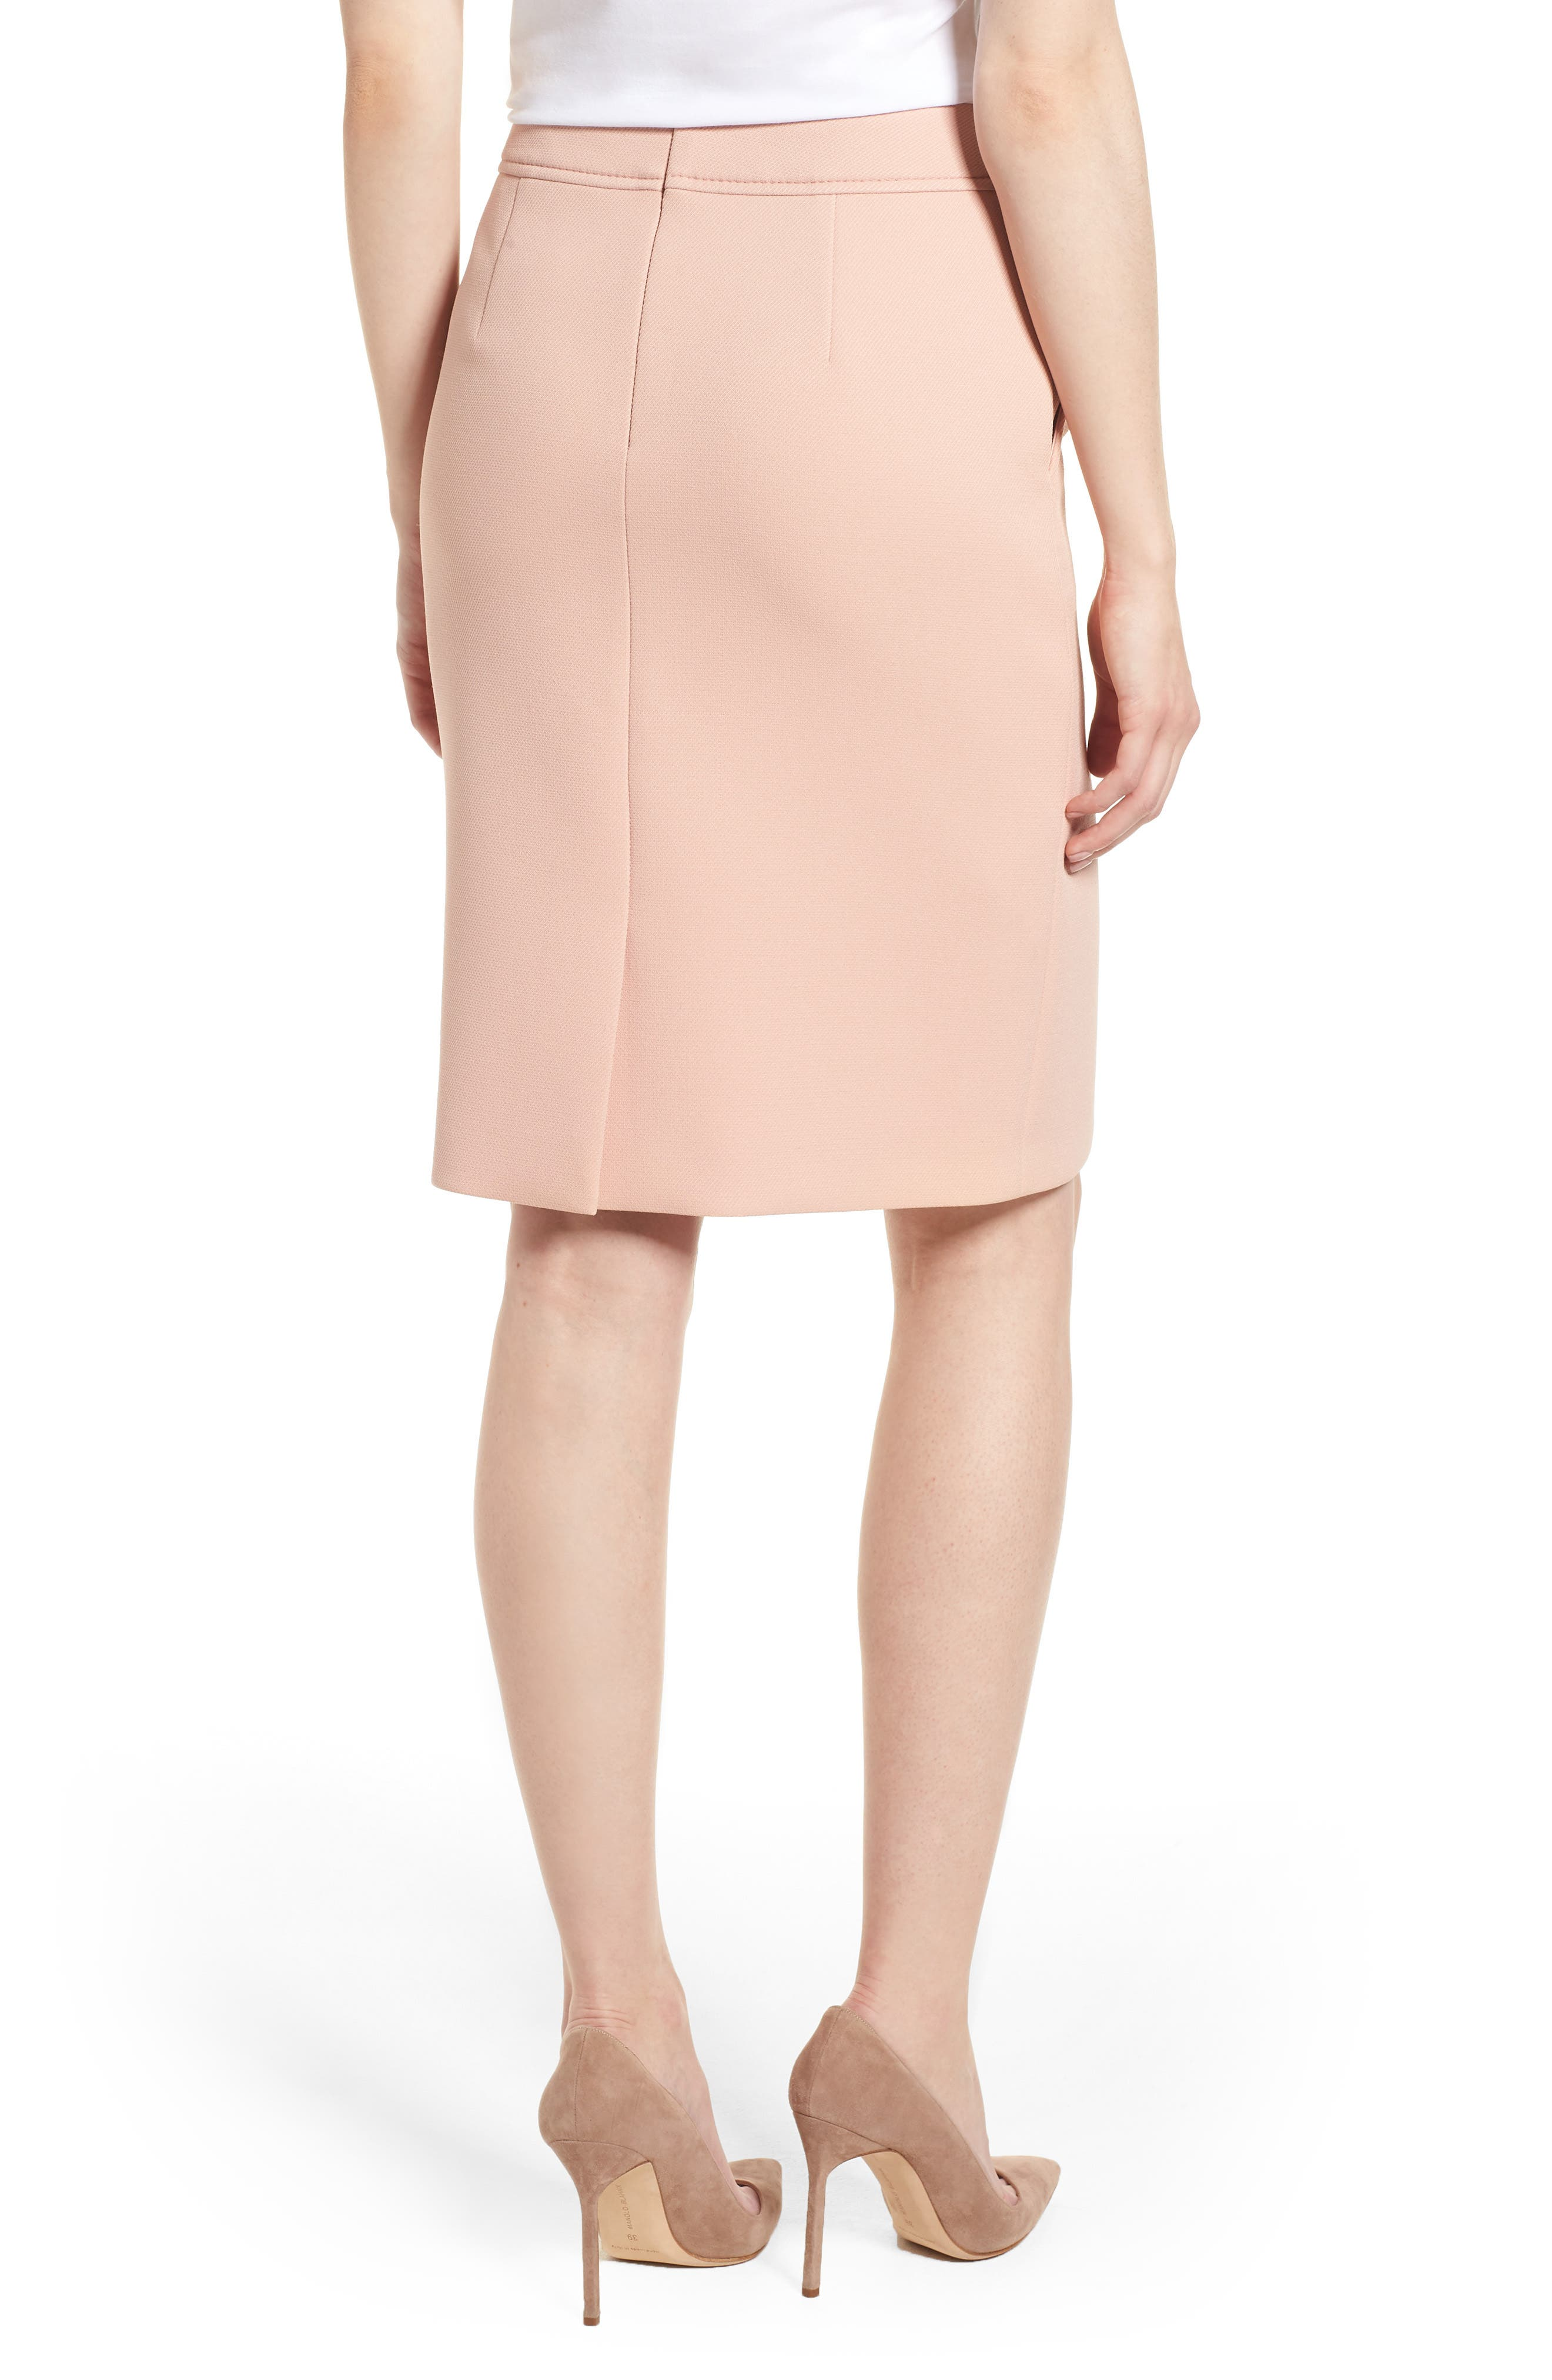 Vuleama Compact Twill Pencil Skirt,                             Alternate thumbnail 2, color,                             Blush